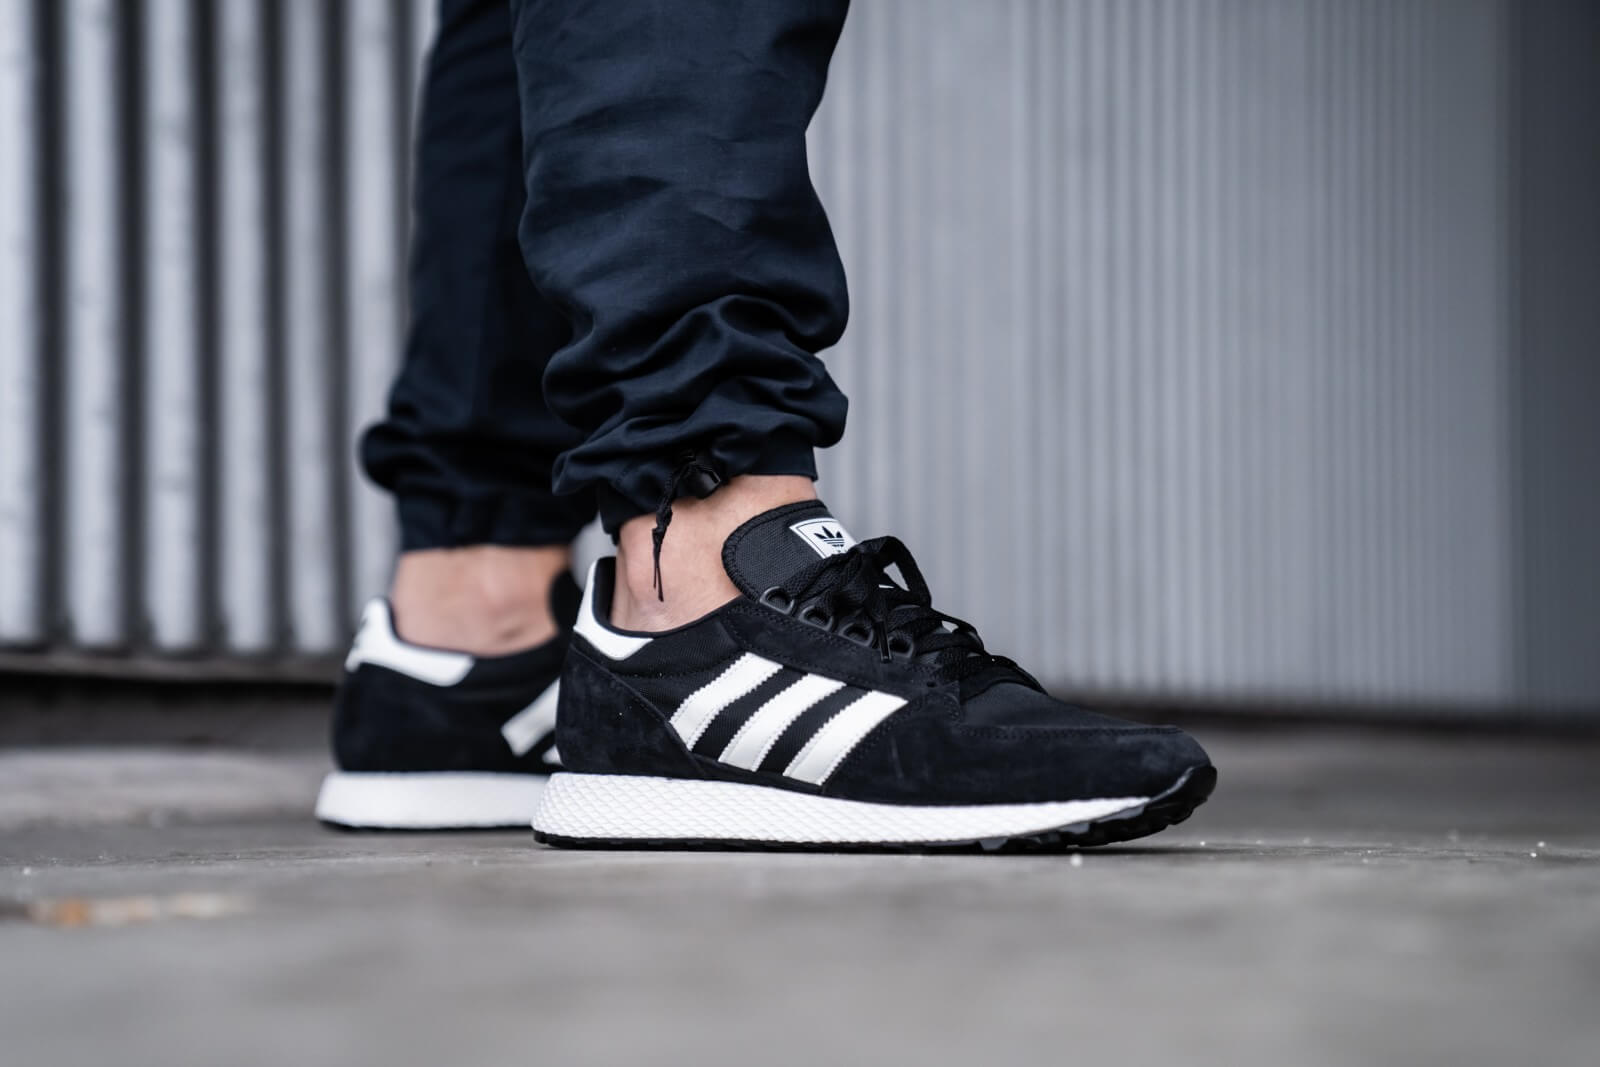 Adidas Forest Grove Core BlackCloud White EE5834